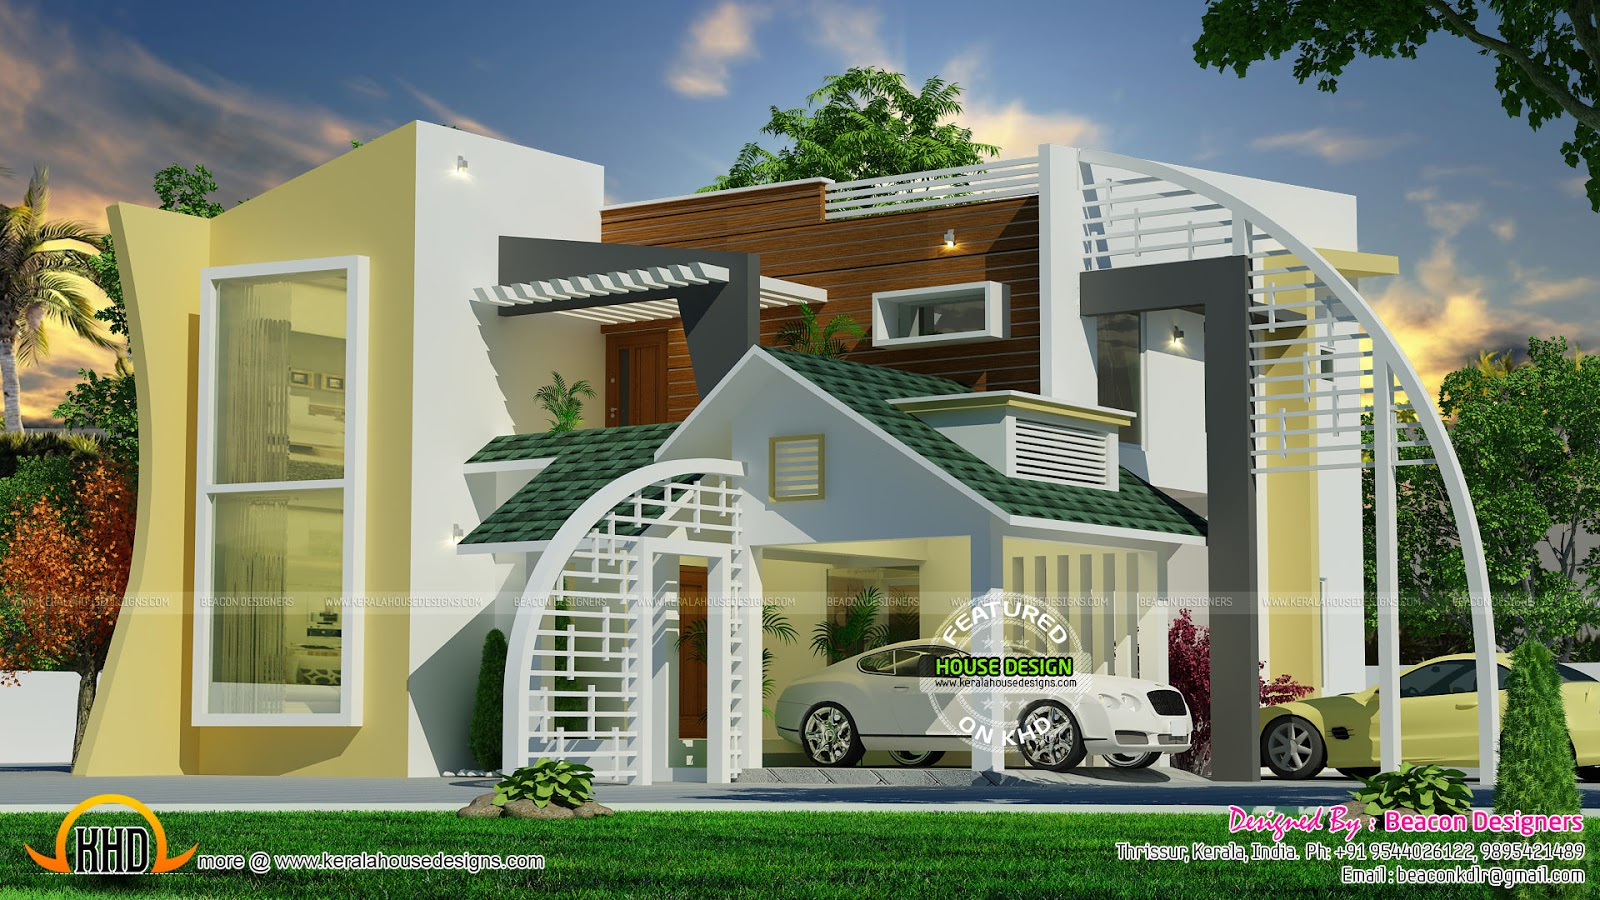 Unique ultra modern contemporary home kerala home design and floor plans - Contemporary house designs ...